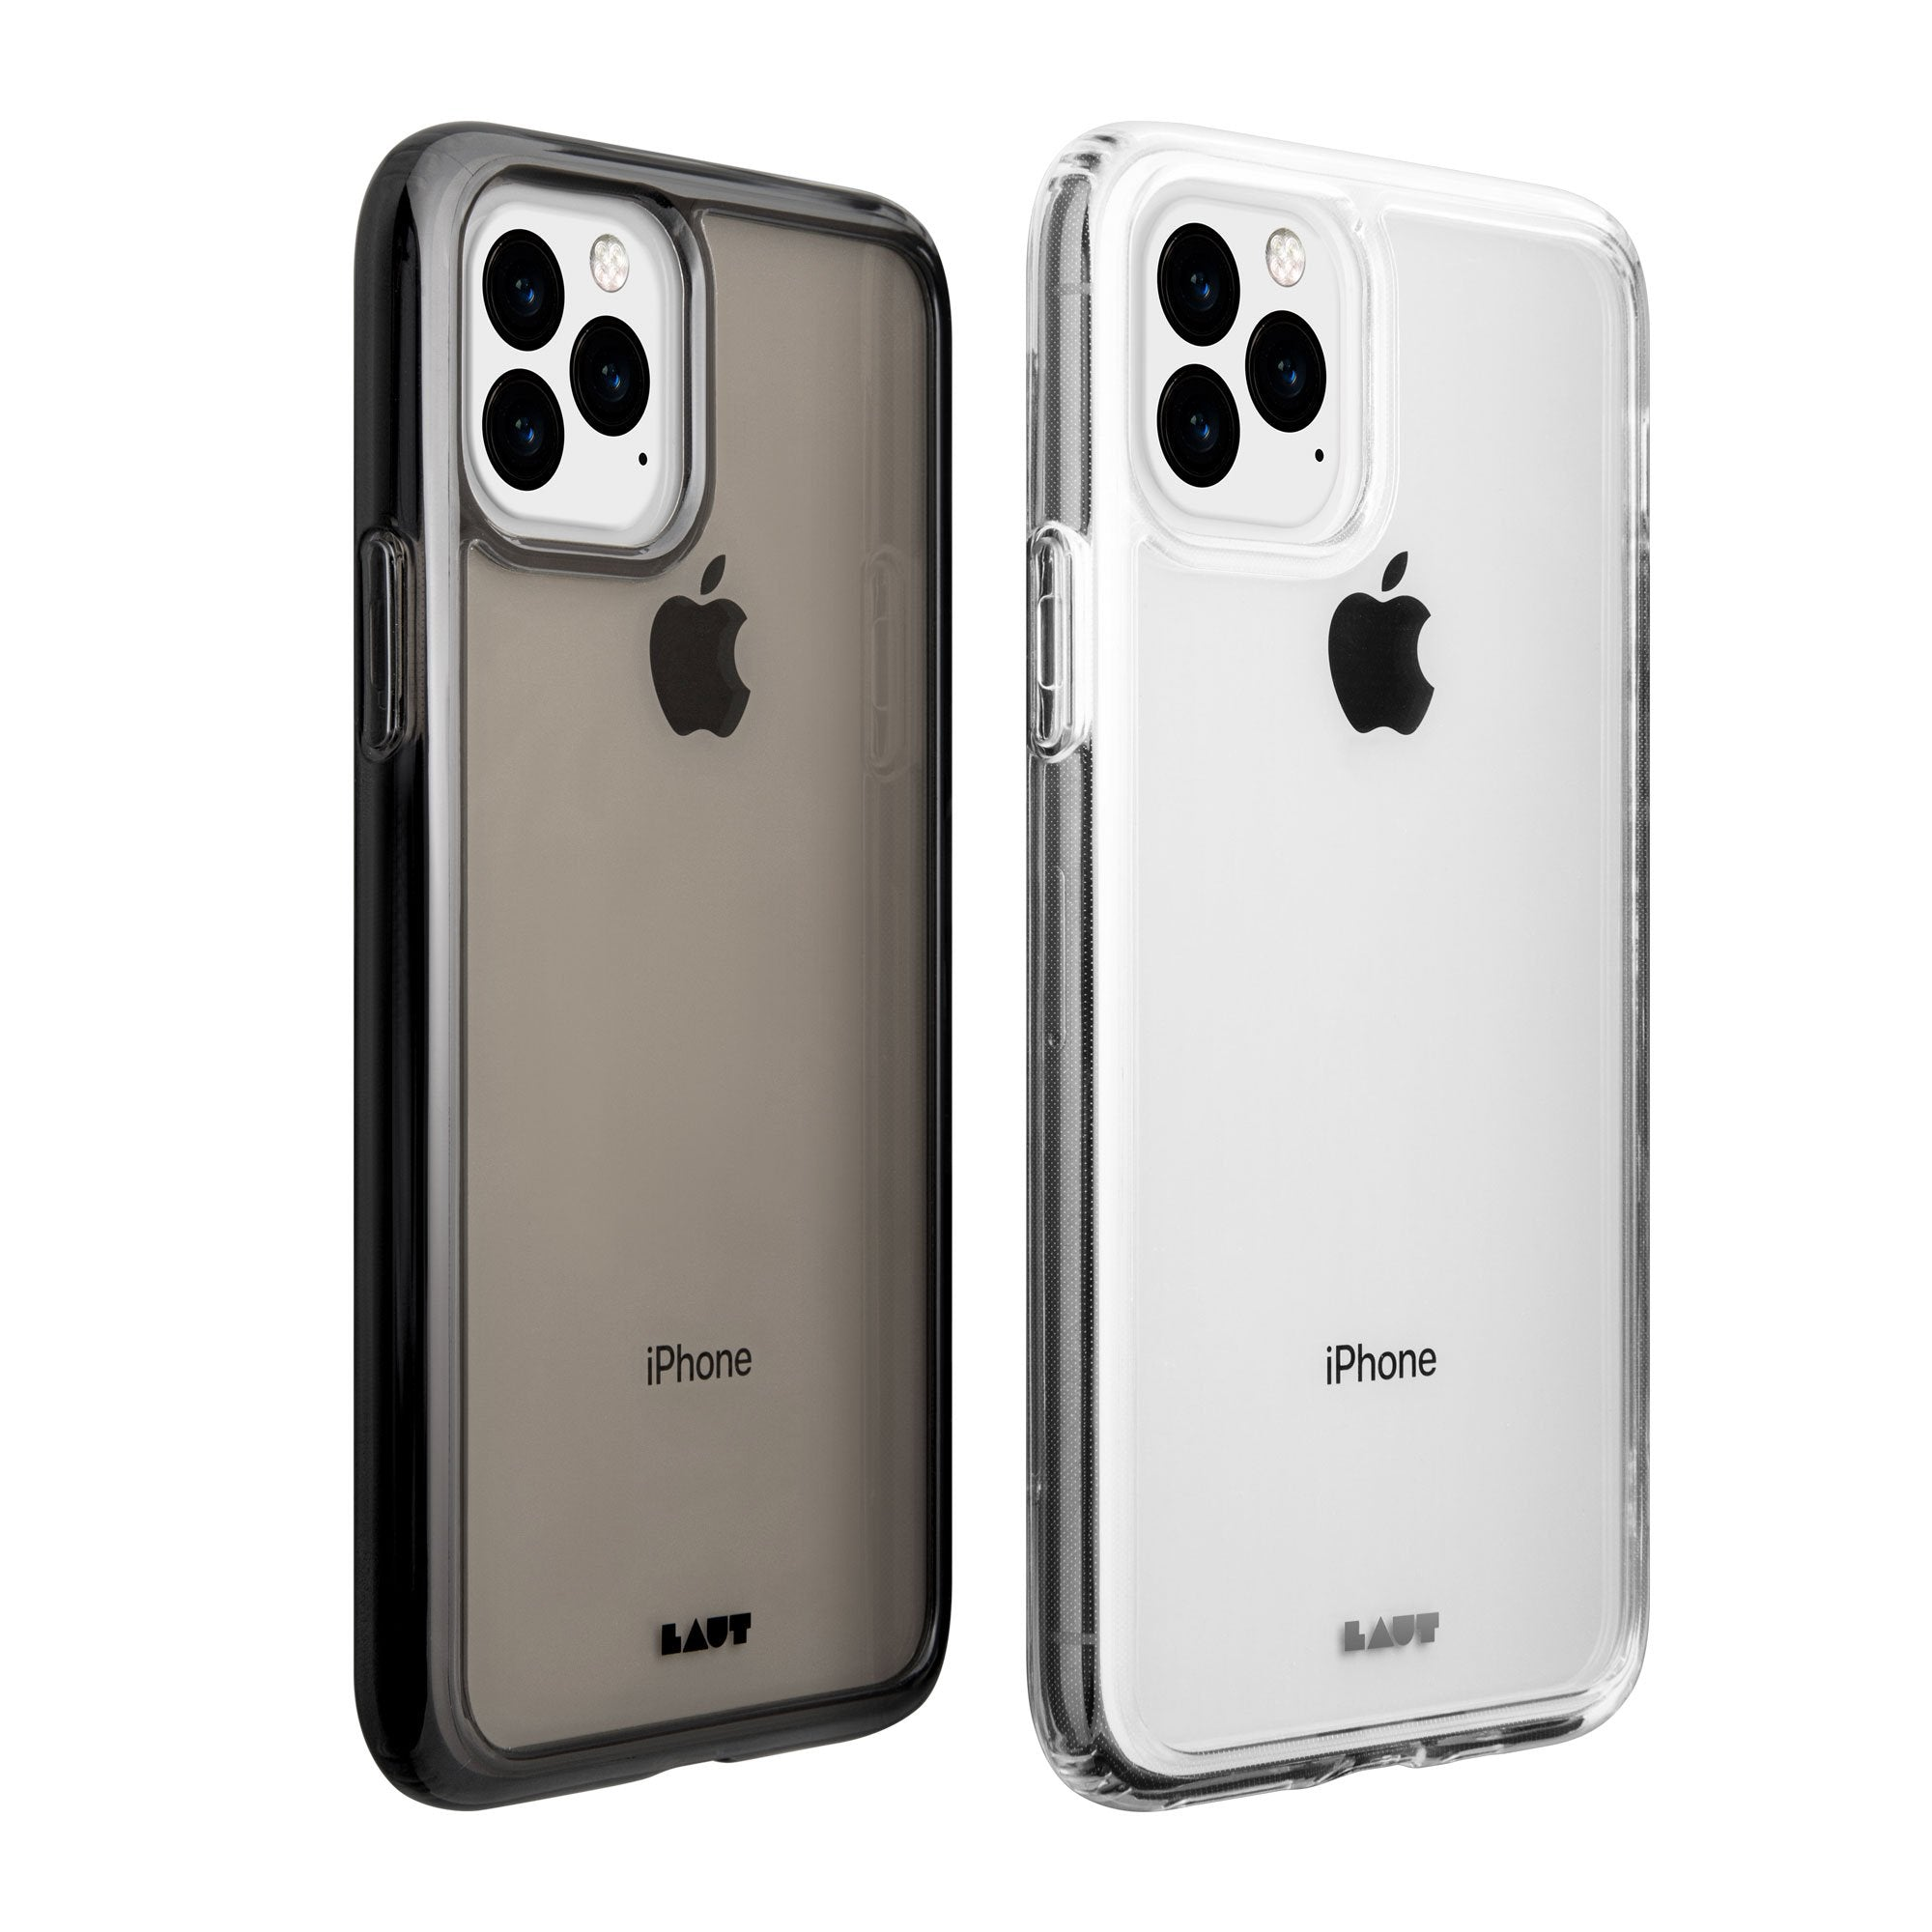 LAUT-CRYSTAL-X for iPhone 11 Series-Case-iPhone 11 / iPhone 11 Pro / iPhone 11 Pro Max